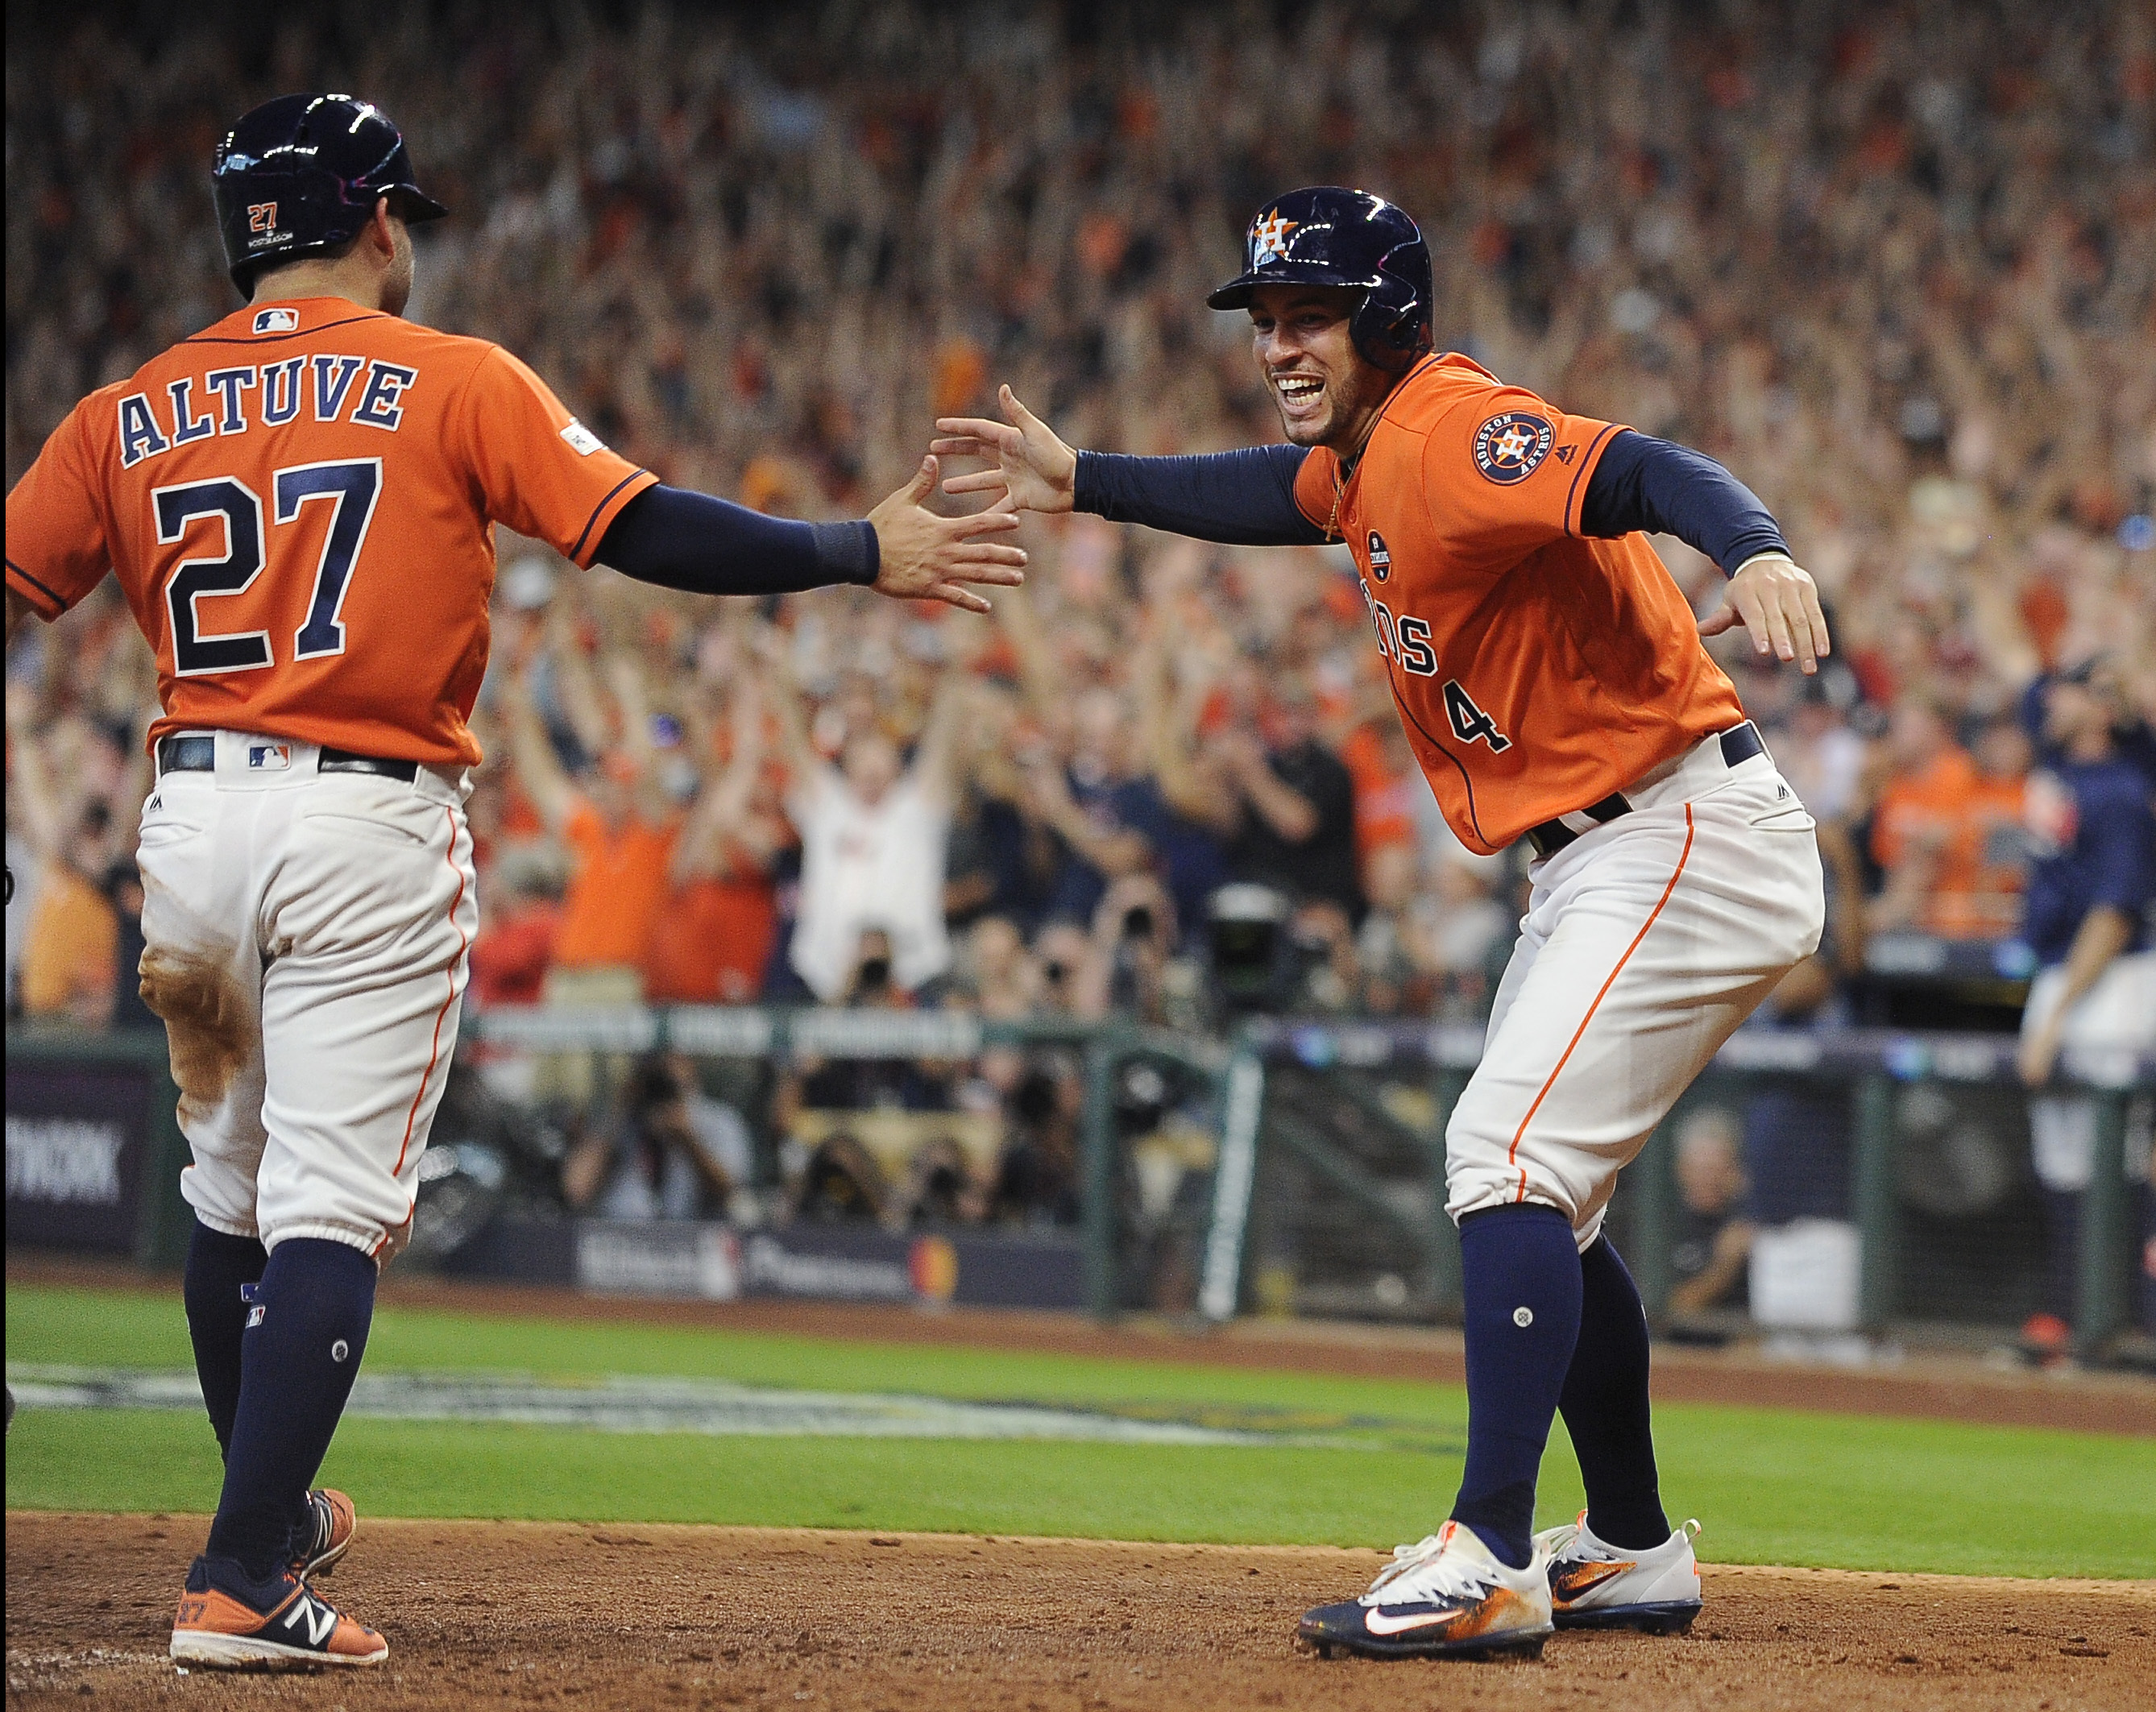 <div class='meta'><div class='origin-logo' data-origin='AP'></div><span class='caption-text' data-credit='Eric Christian Smith'>Houston Astros' Jose Altuve (27) and George Springer (4) celebrate after they scored on teammate Carlos Correa's double in Game 2.</span></div>